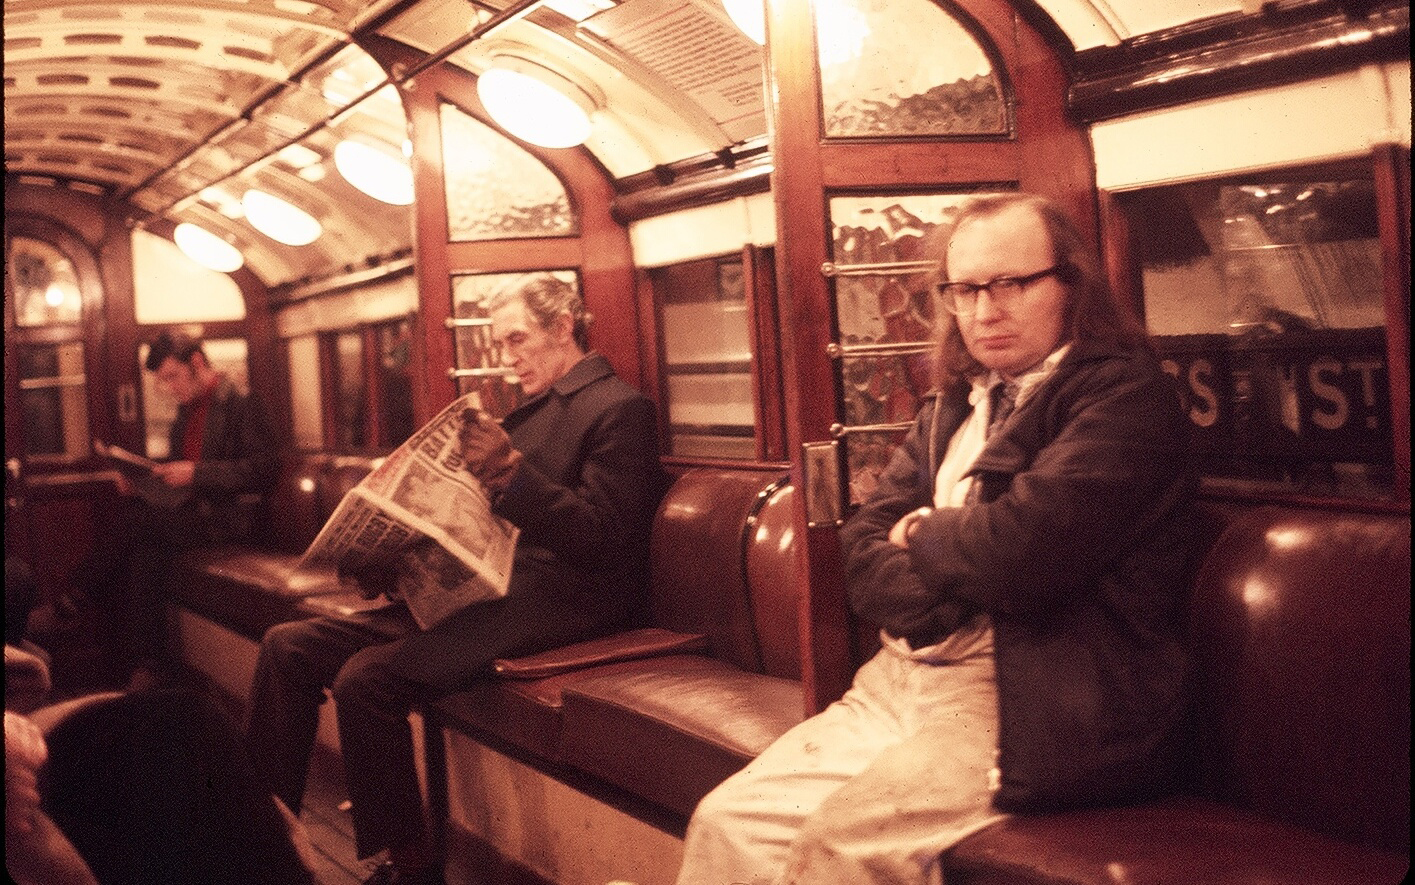 Donald Urquhart, pictured above right, was snapped by an American art student in 1975 on Glasgow's underground; the snap was shared as part of the Lost Glasgow Exhibition